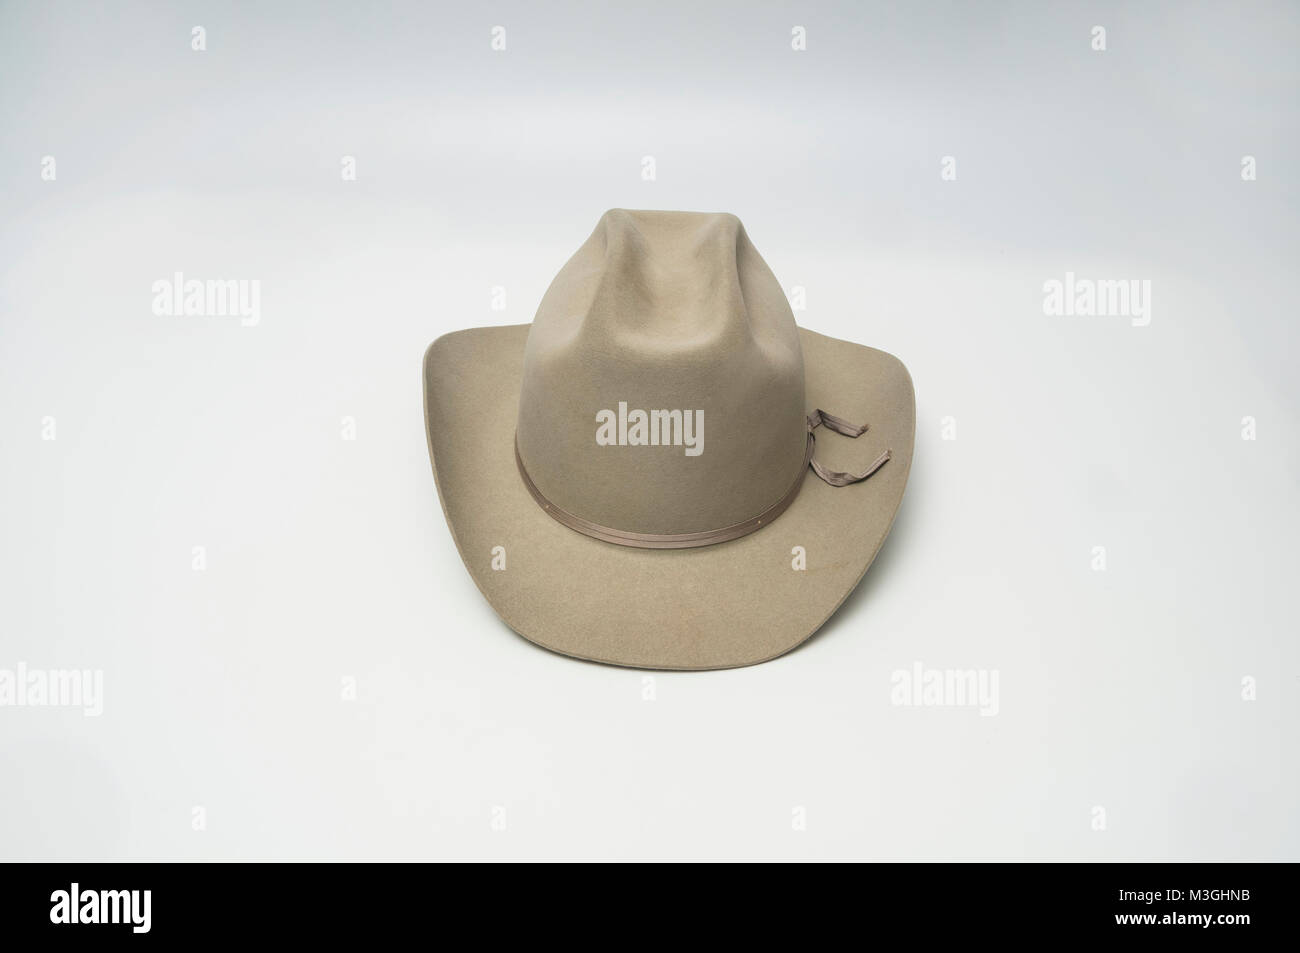 37cb1ad5 Stetson Hat Stock Photos & Stetson Hat Stock Images - Alamy